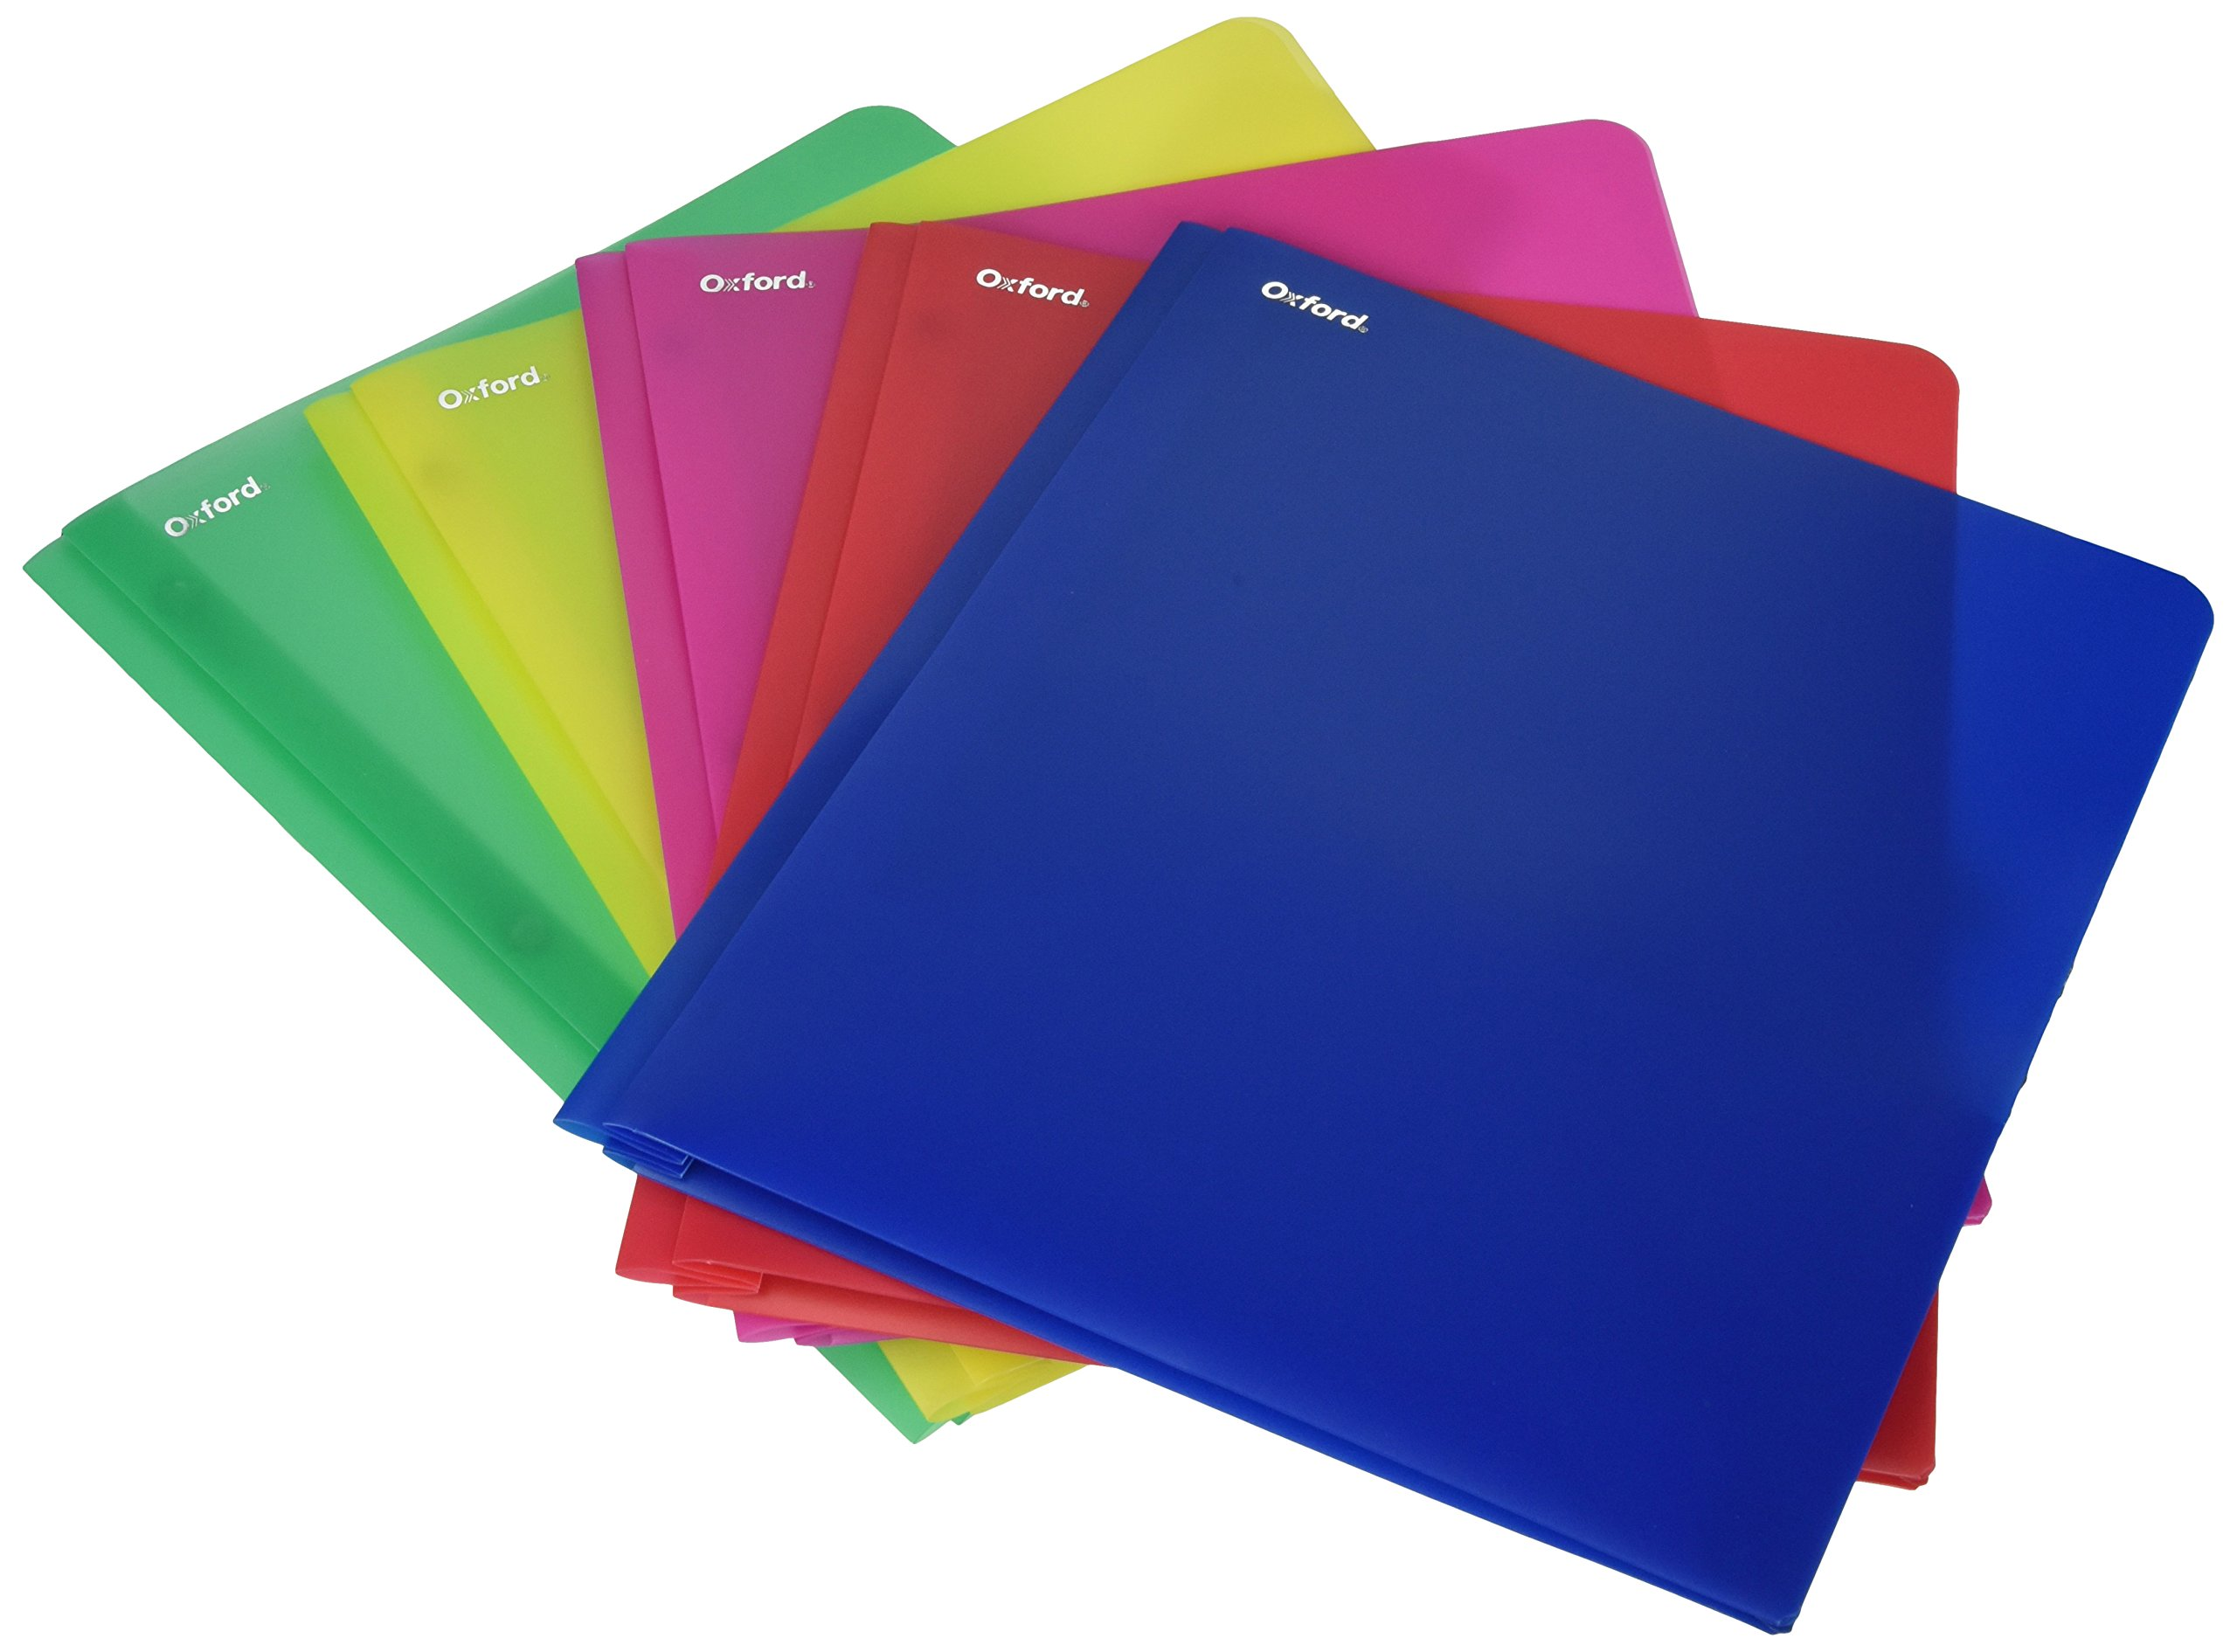 Oxford 99811 Translucent Twin-Pocket Poly Portfolios, 8-1/2 x 11, Assorted Colors, 25 folder